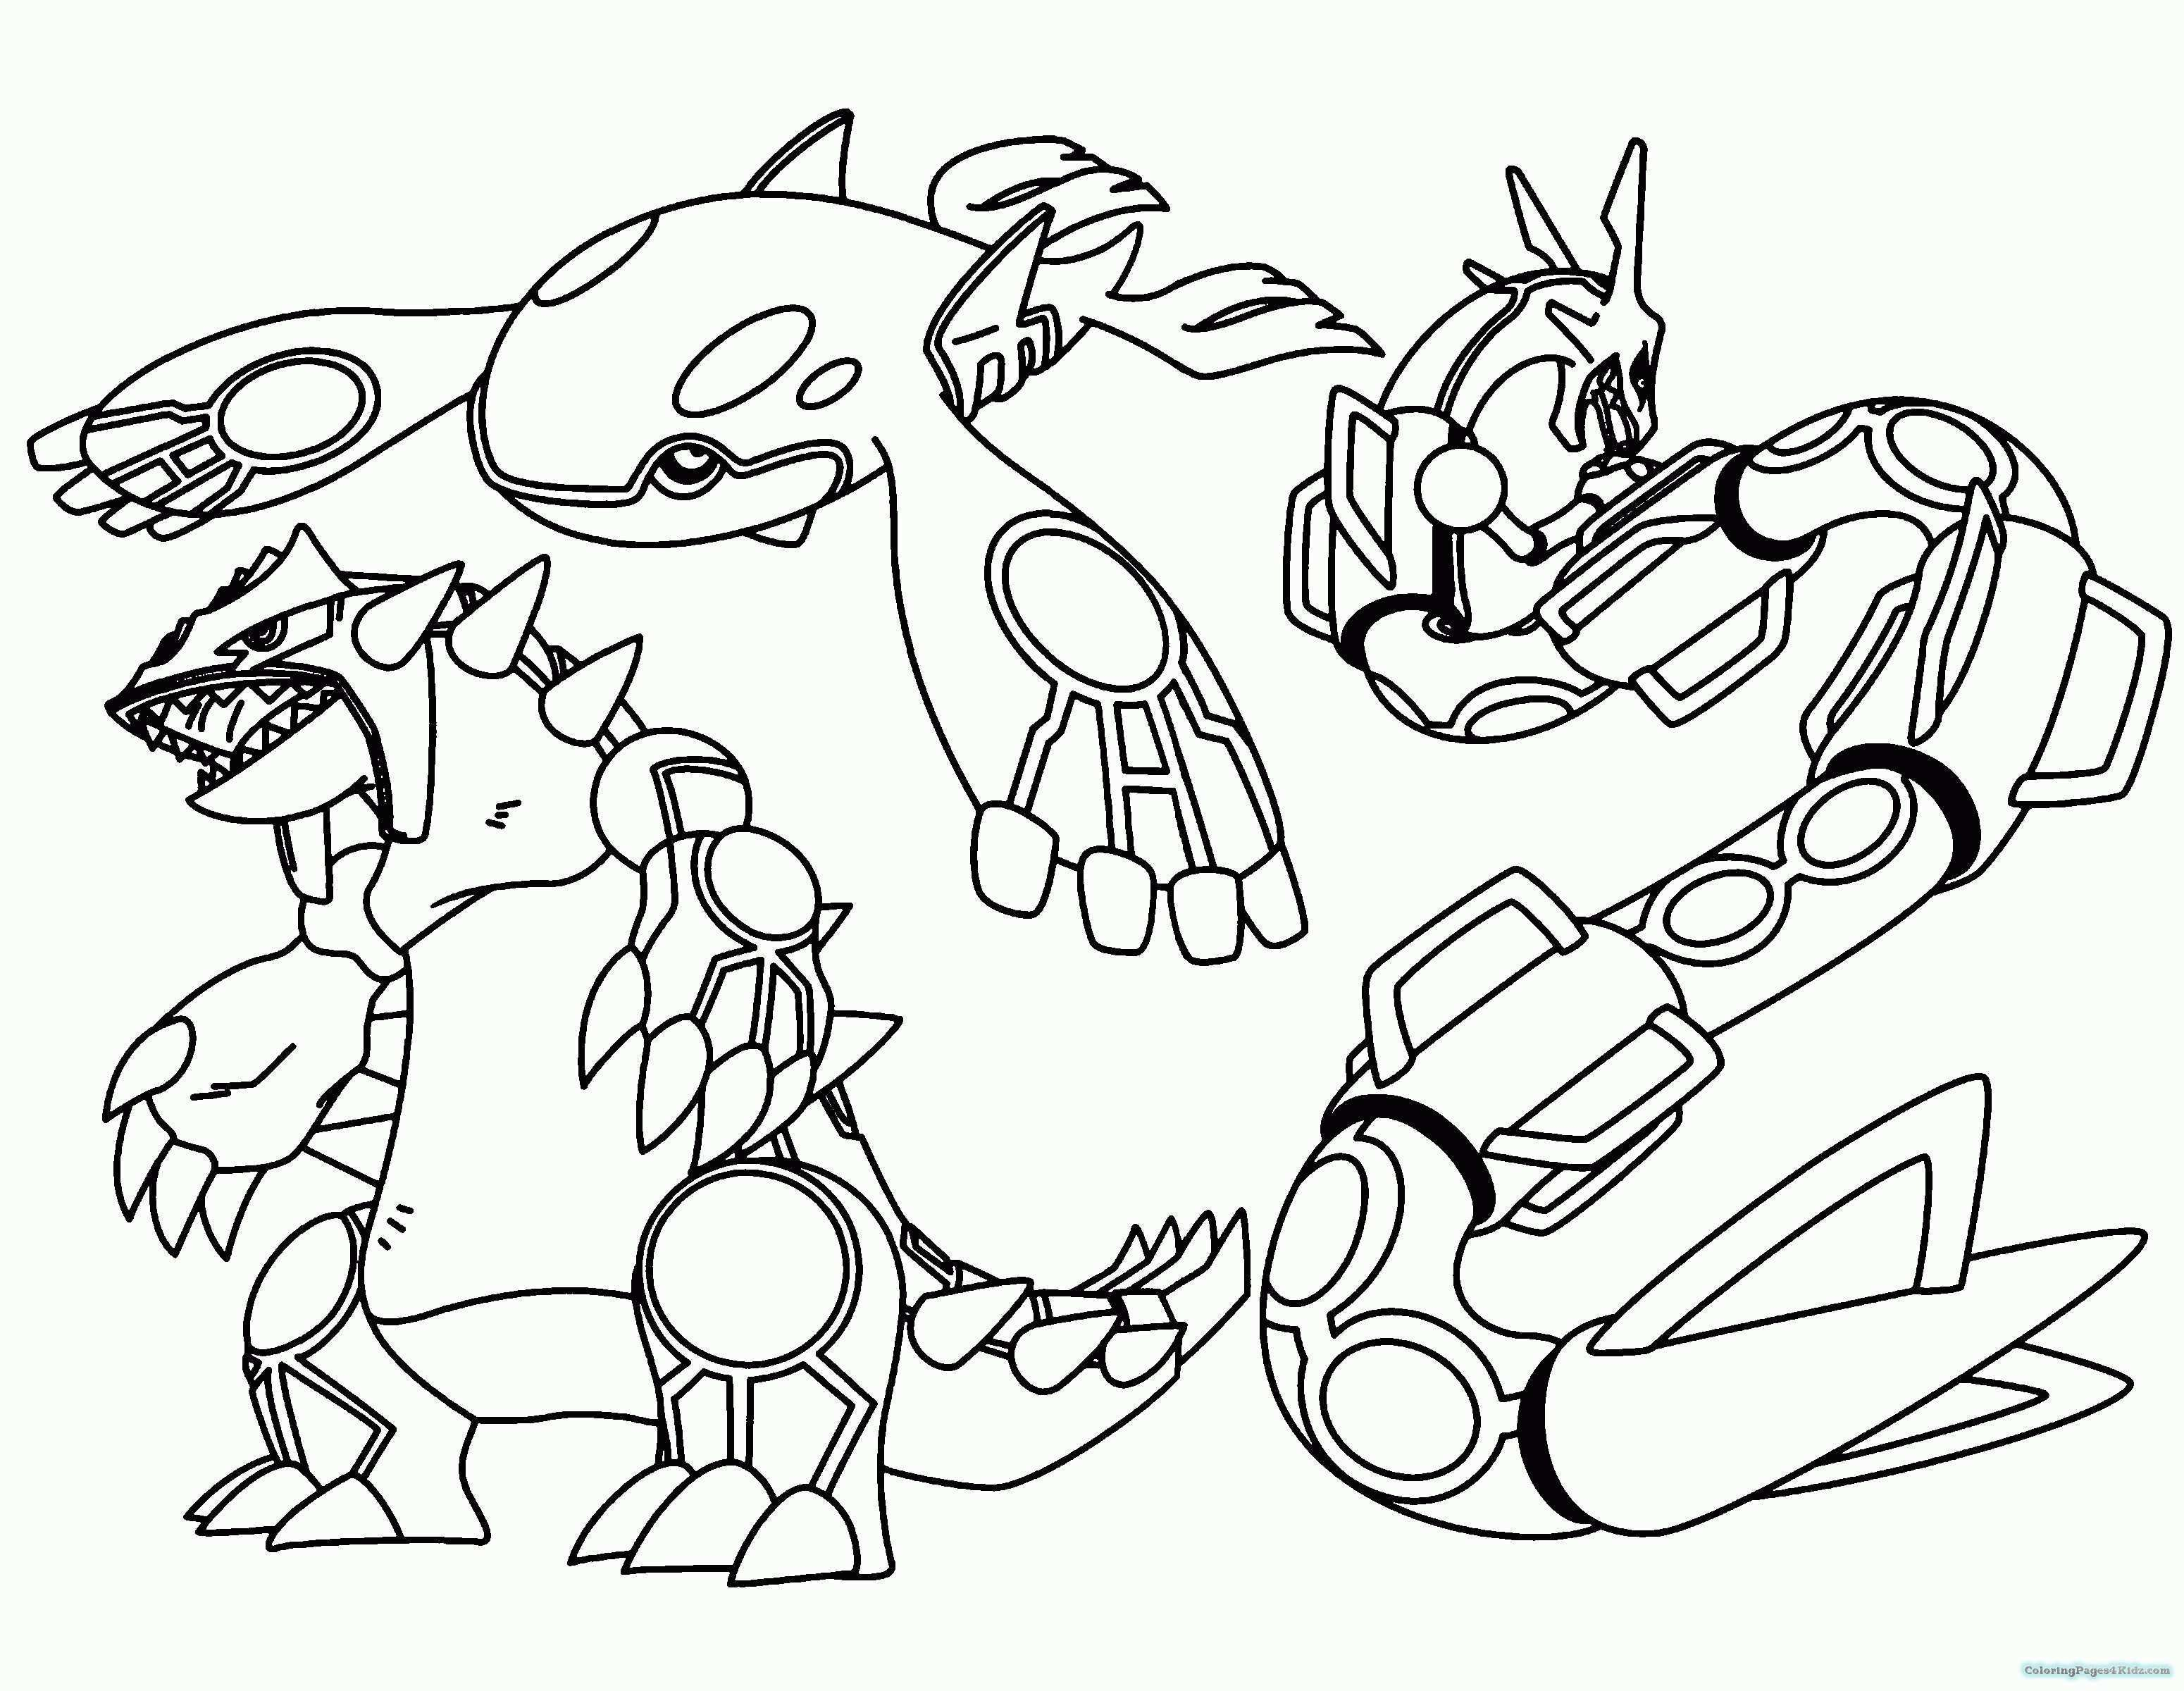 10 Legendary Pokemon Cheat Codes For Emerald Legendary Pokemon Plush Legendary Pokemon Pokemon Coloring Pages Cartoon Coloring Pages Mandala Coloring Pages